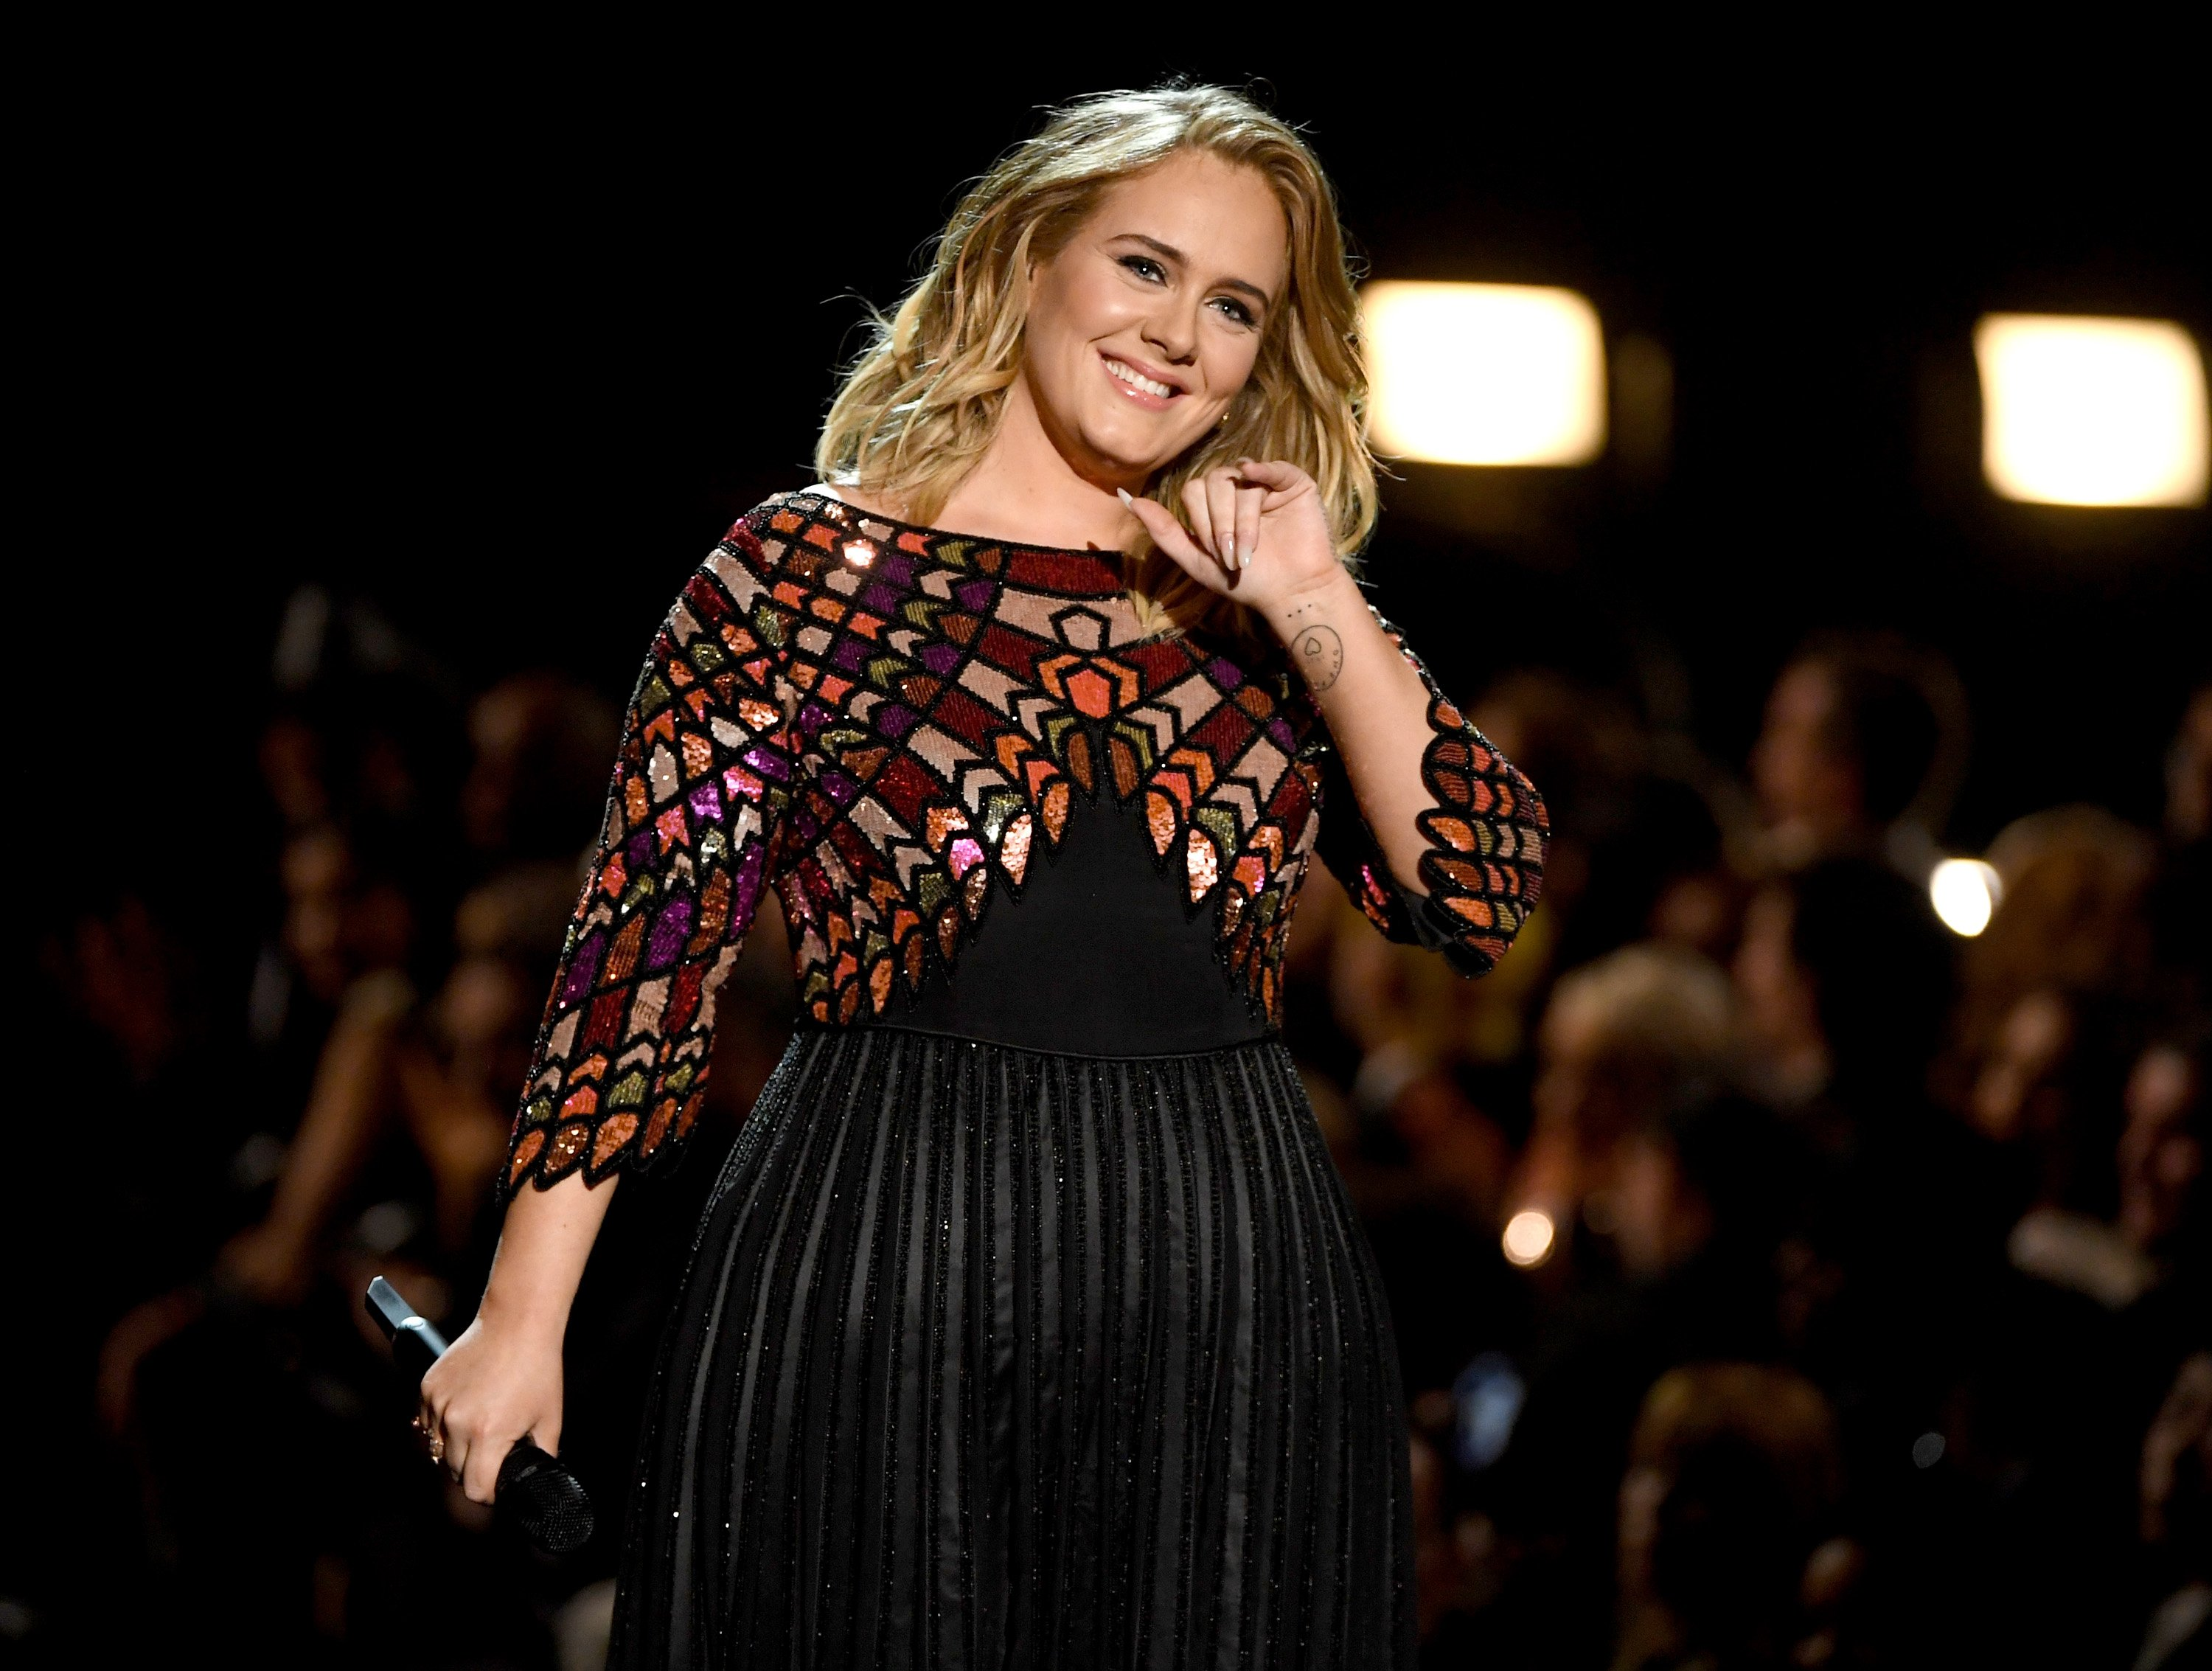 Adele performs onstage during The 59th GRAMMY Awards on February 12, 2017, in Los Angeles, California. | Source: Getty Images